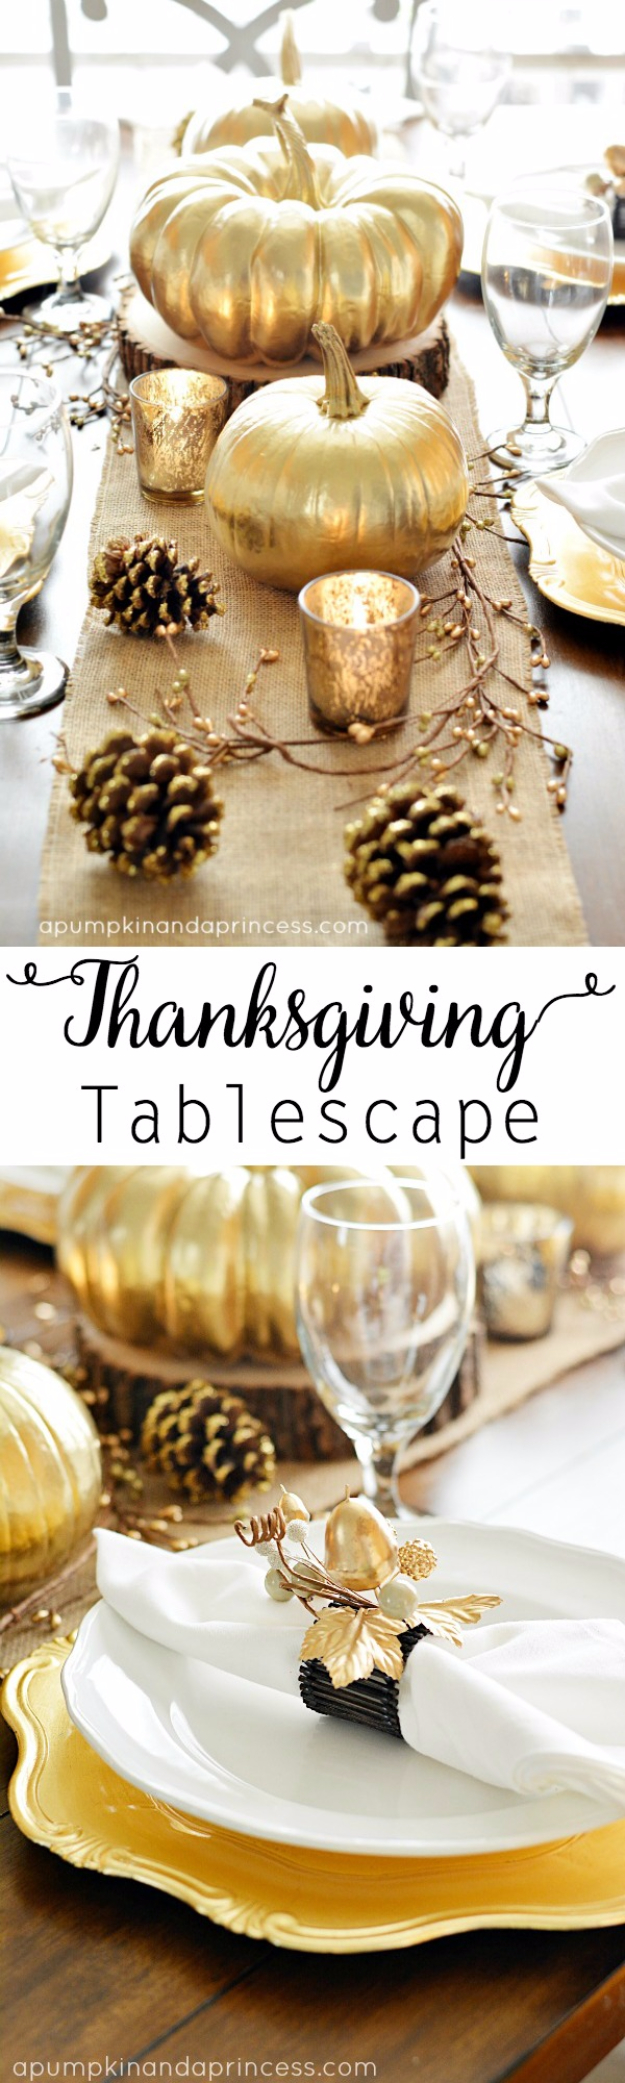 Best Thanksgiving Centerpieces and Table Decor - Thanksgiving Inspired Gold Table Decor - Creative Crafts for Your Thanksgiving Dinner Table. Mason Jars, Flowers, Leaves, Candles, Pumpkin Ideas #thanksgiving #diy